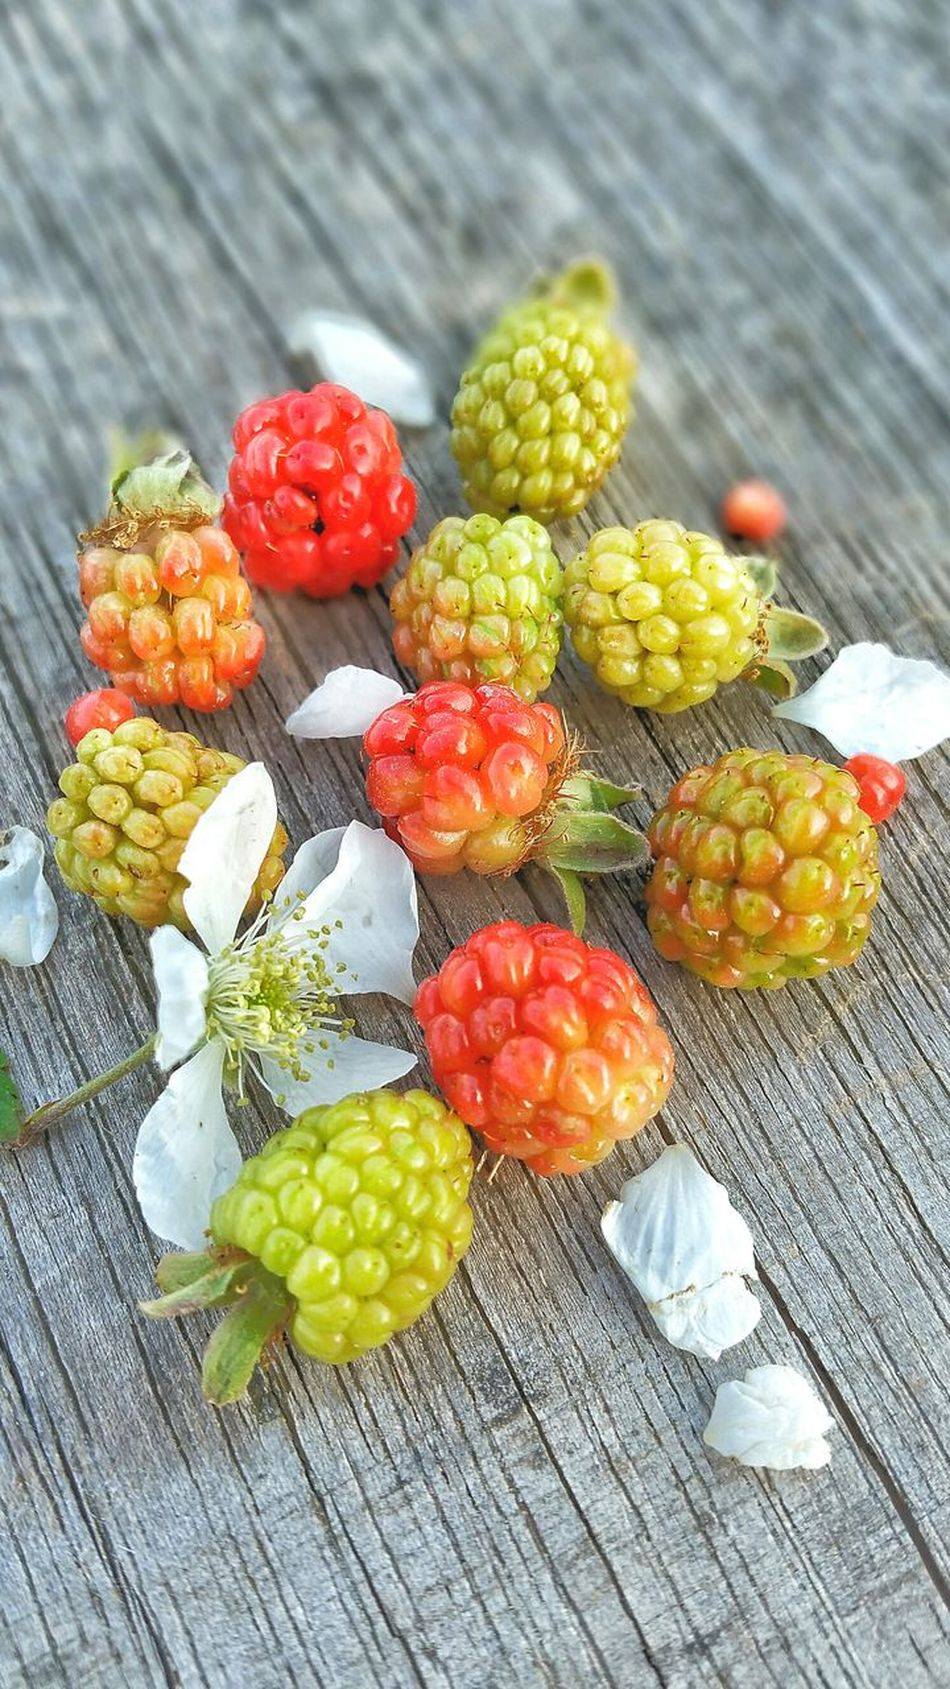 Fruit Food Close-up Variation Healthy Eating Outdoors Day Nature Flower Freshness Room For Copy Room For Text Backgrounds Wild Weathered Wood Unripe Blackberry Wild Blackberries Dew Berries Multi Colored Wild Berries Group Bunch Nature Ready-to-eat